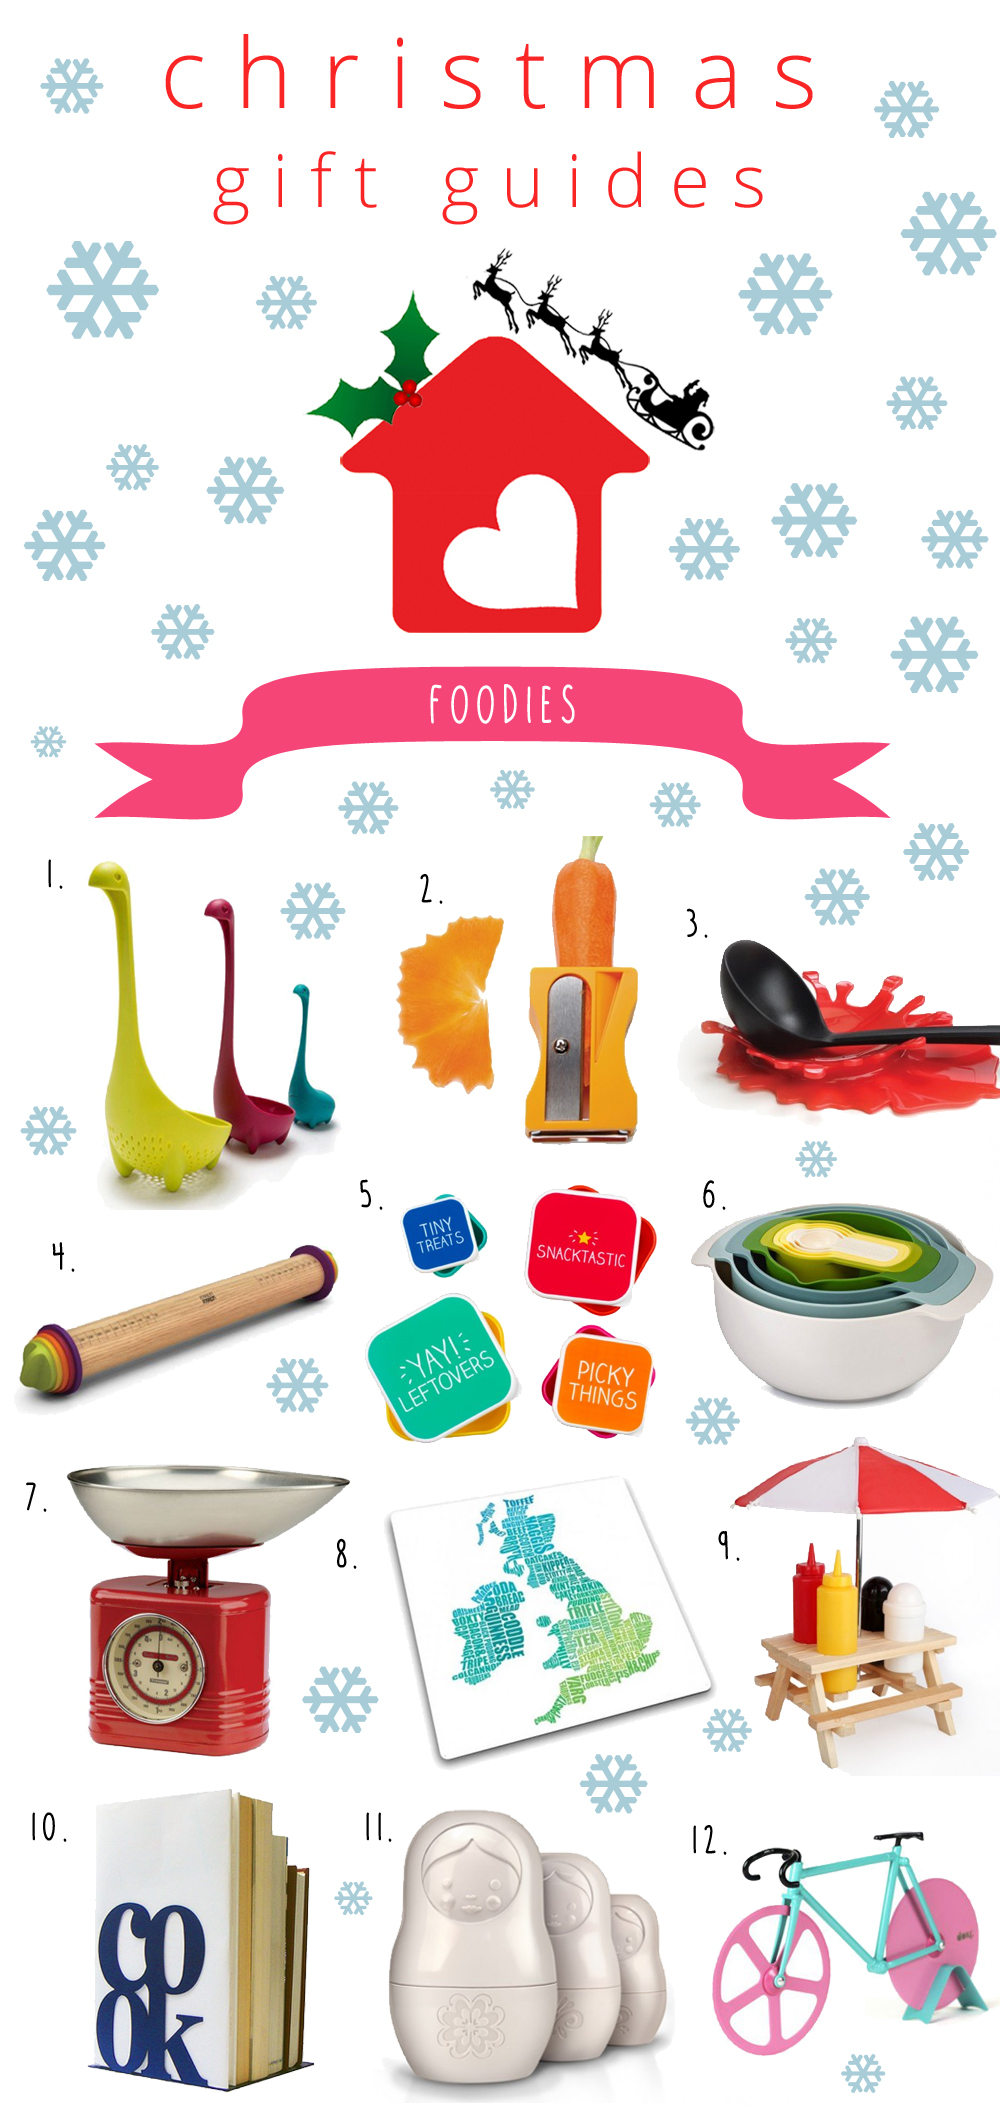 xmas guides foodies